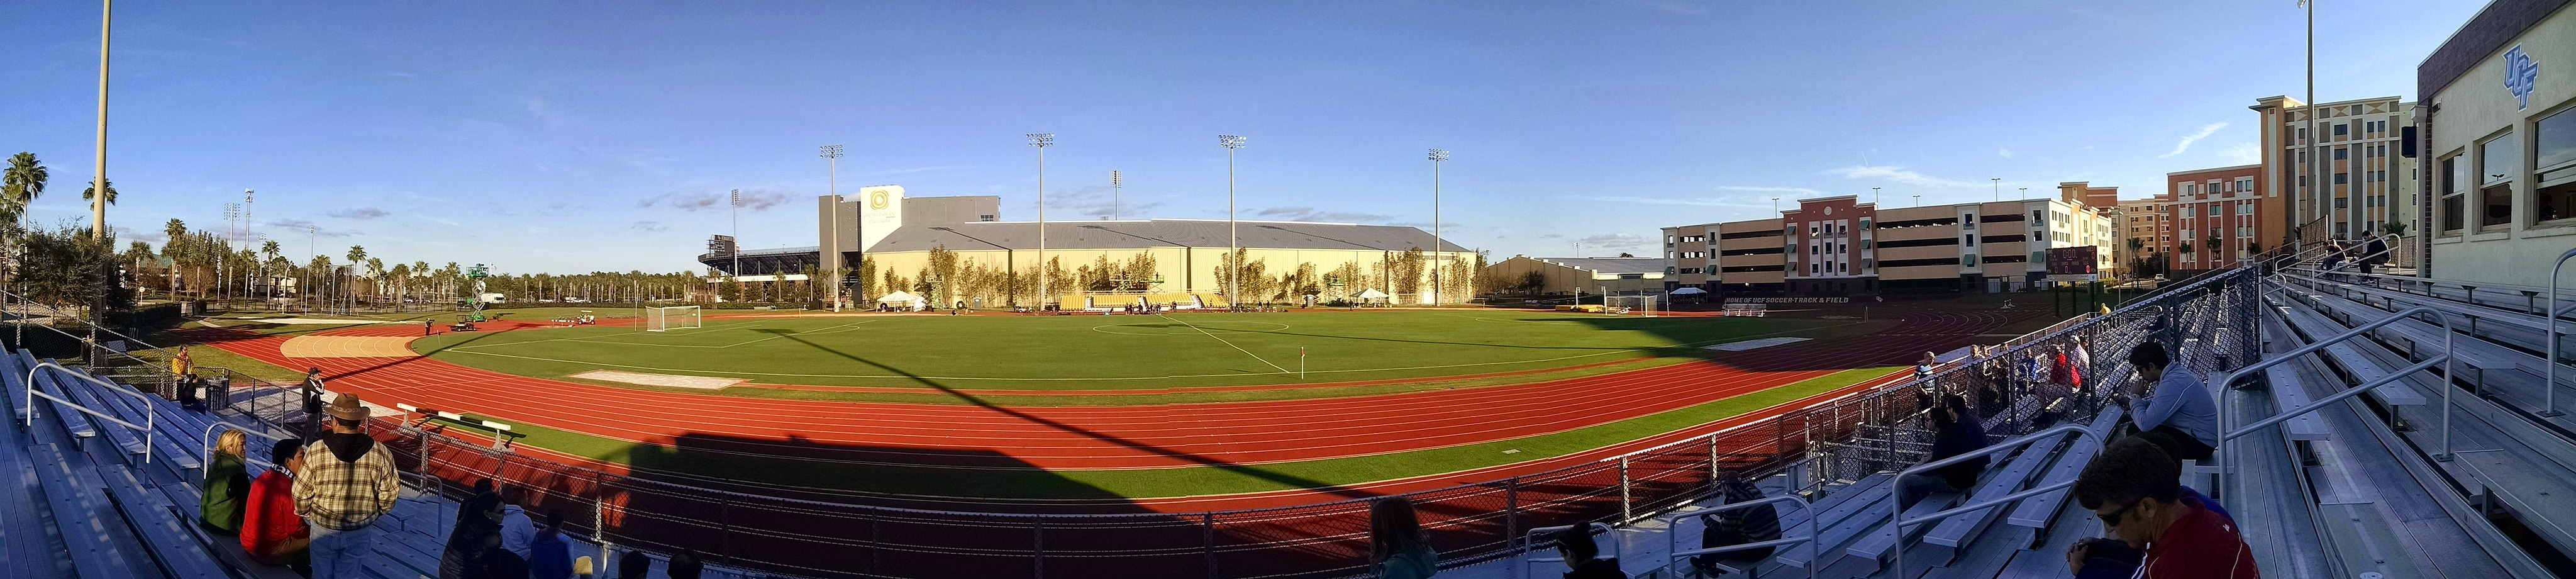 UCF Track and Soccer Complex (Image: Wikimedia Commons)